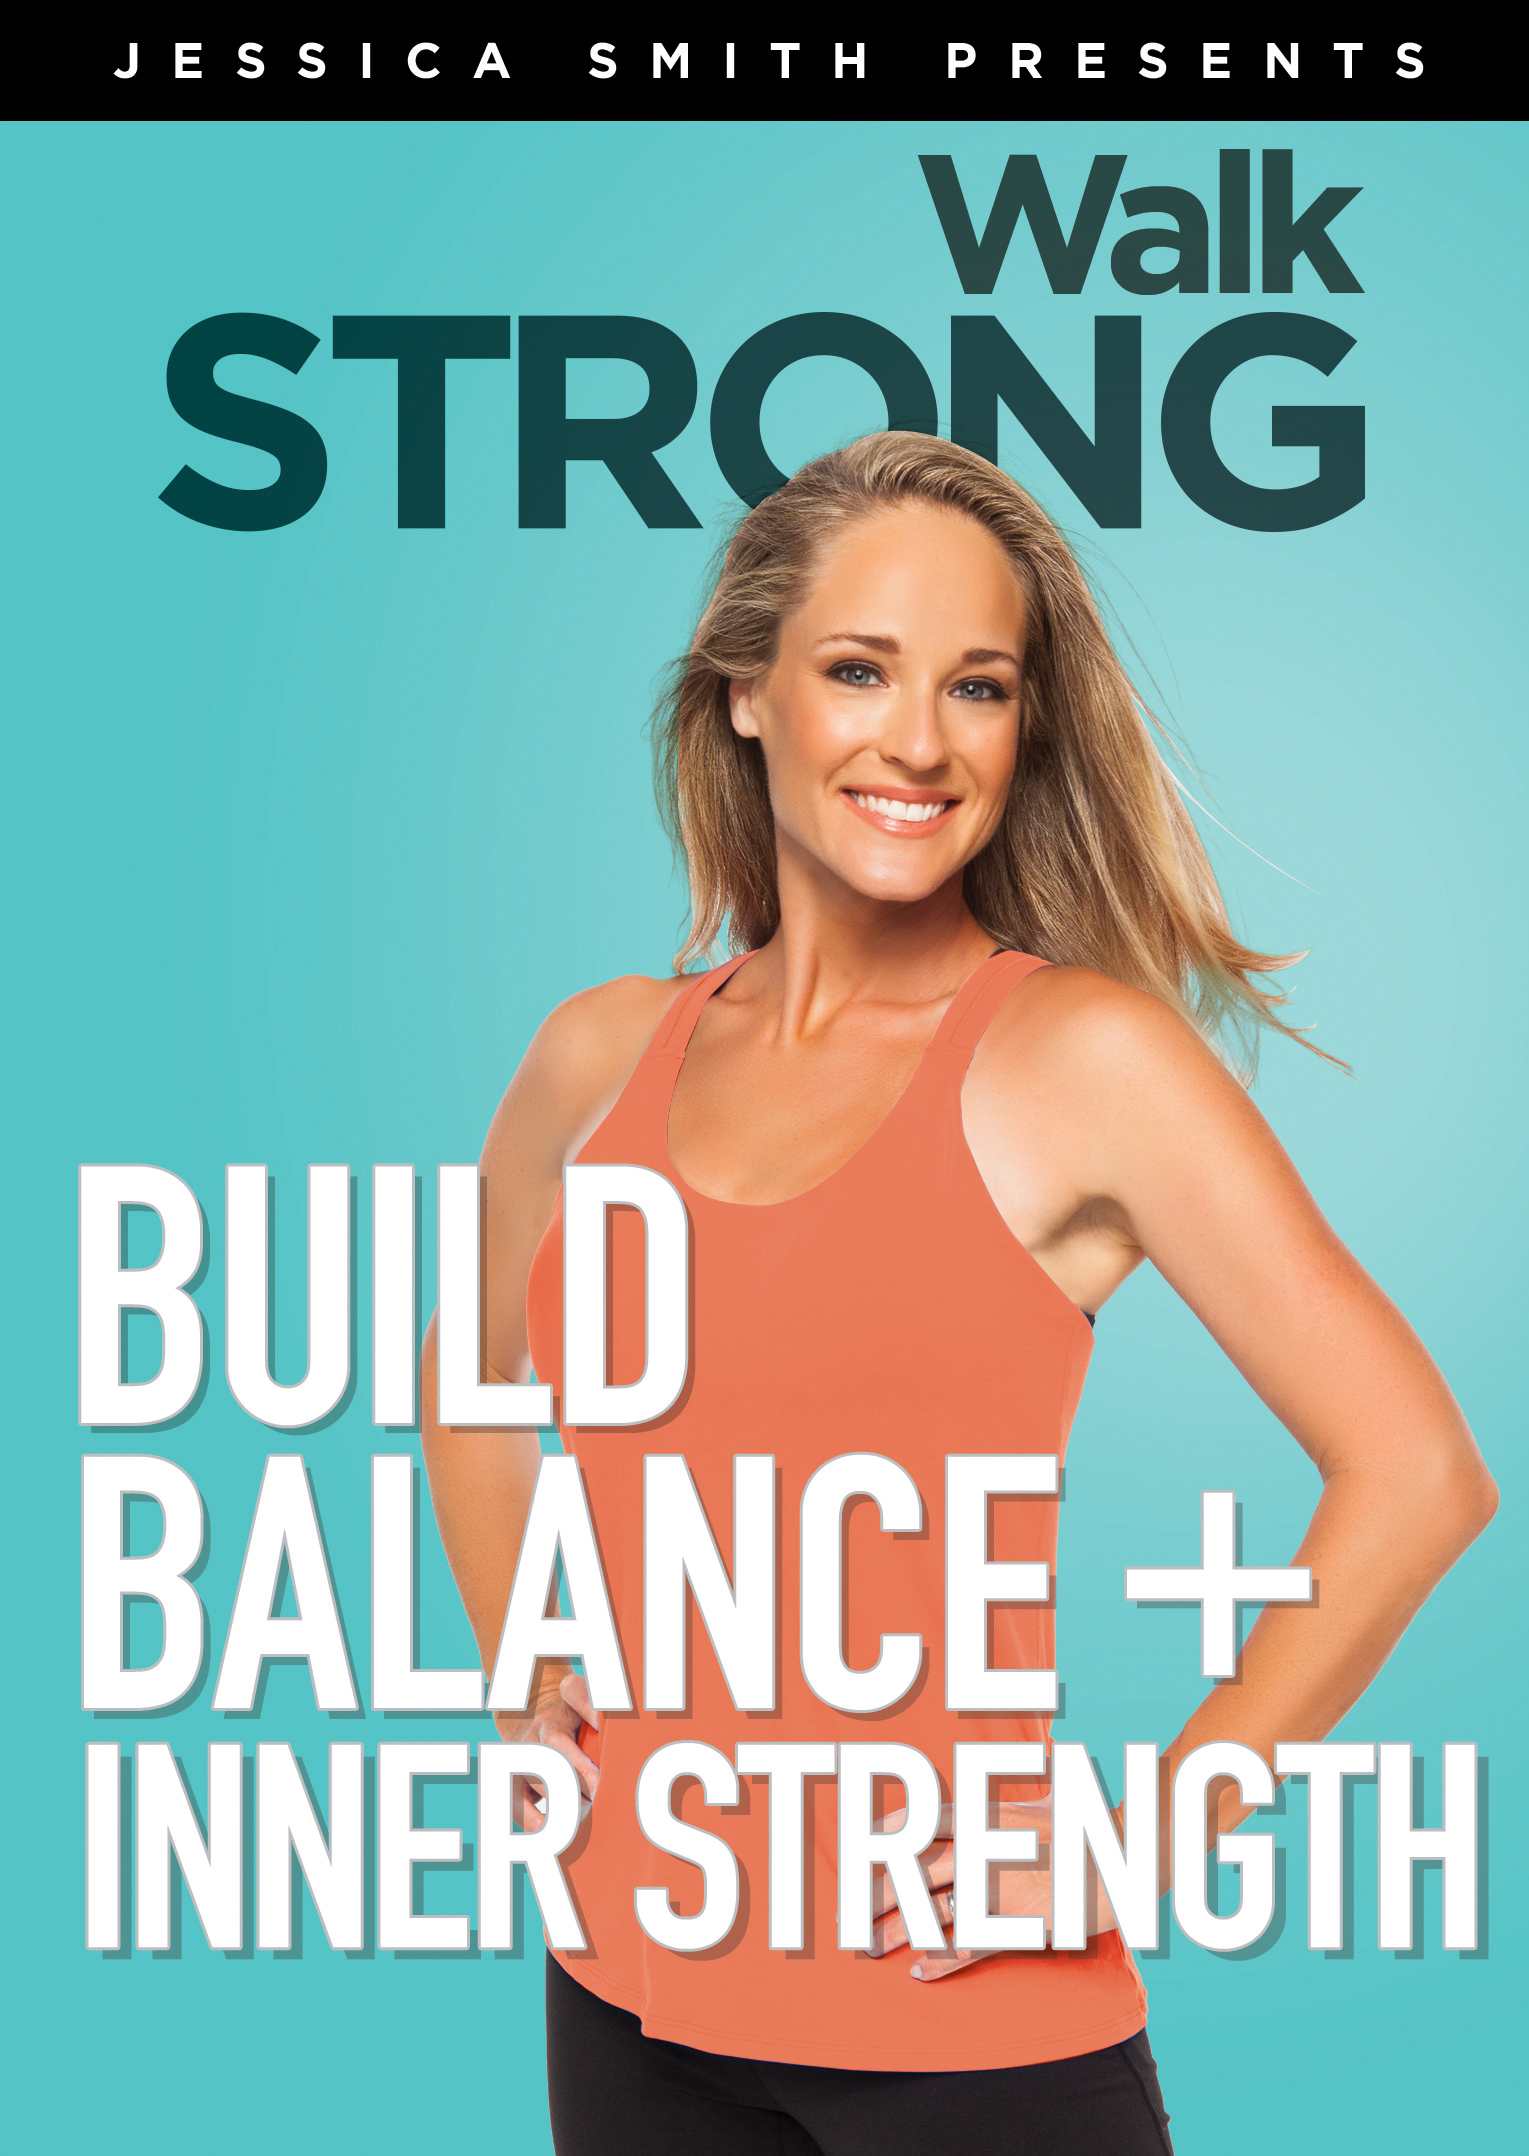 Jessica Smith - Walk Strong - Build Balance + Inner Strength